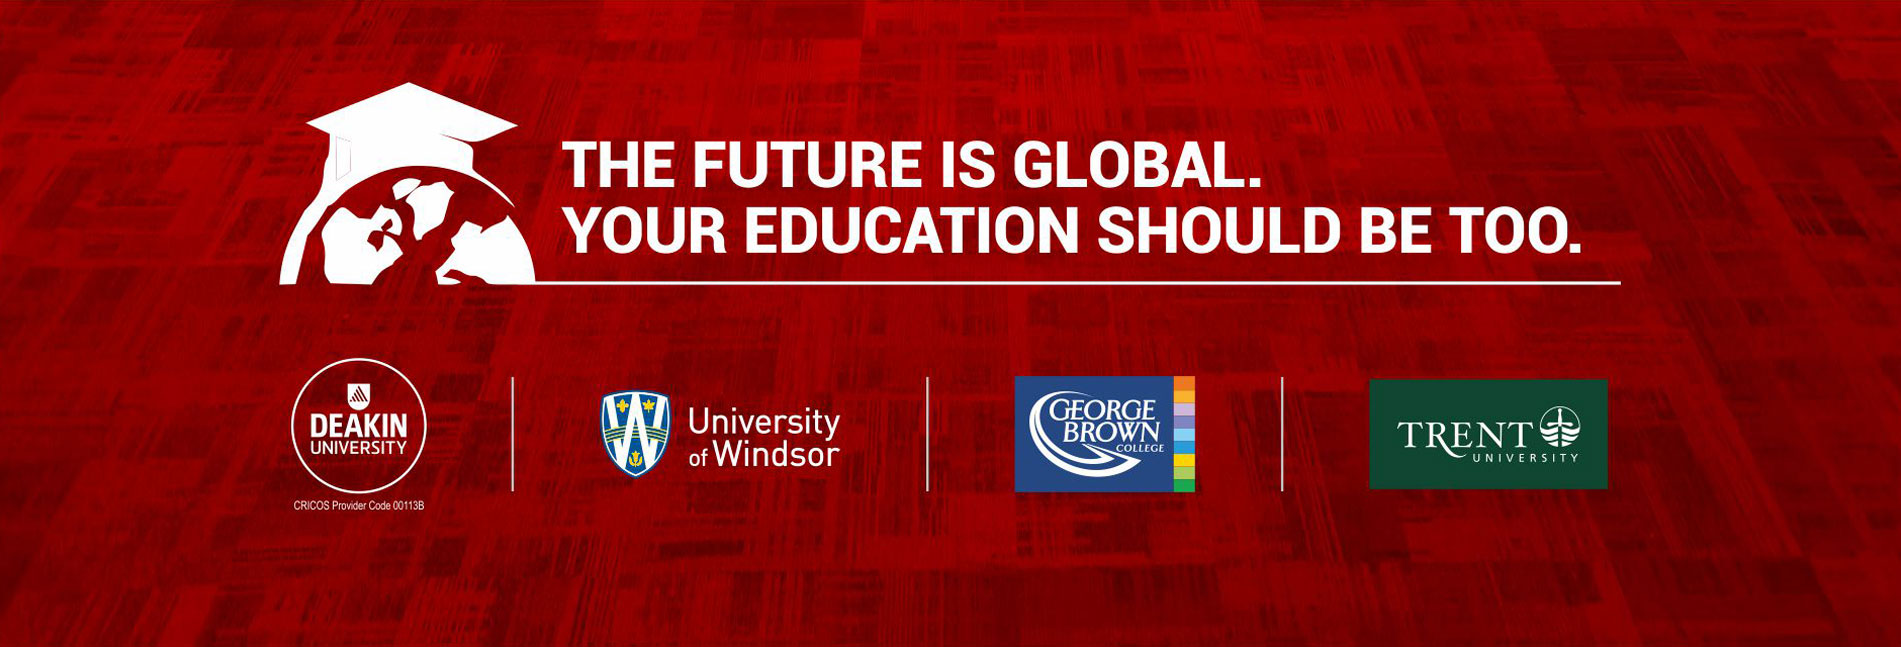 The Future is Global. Your Education should be too.